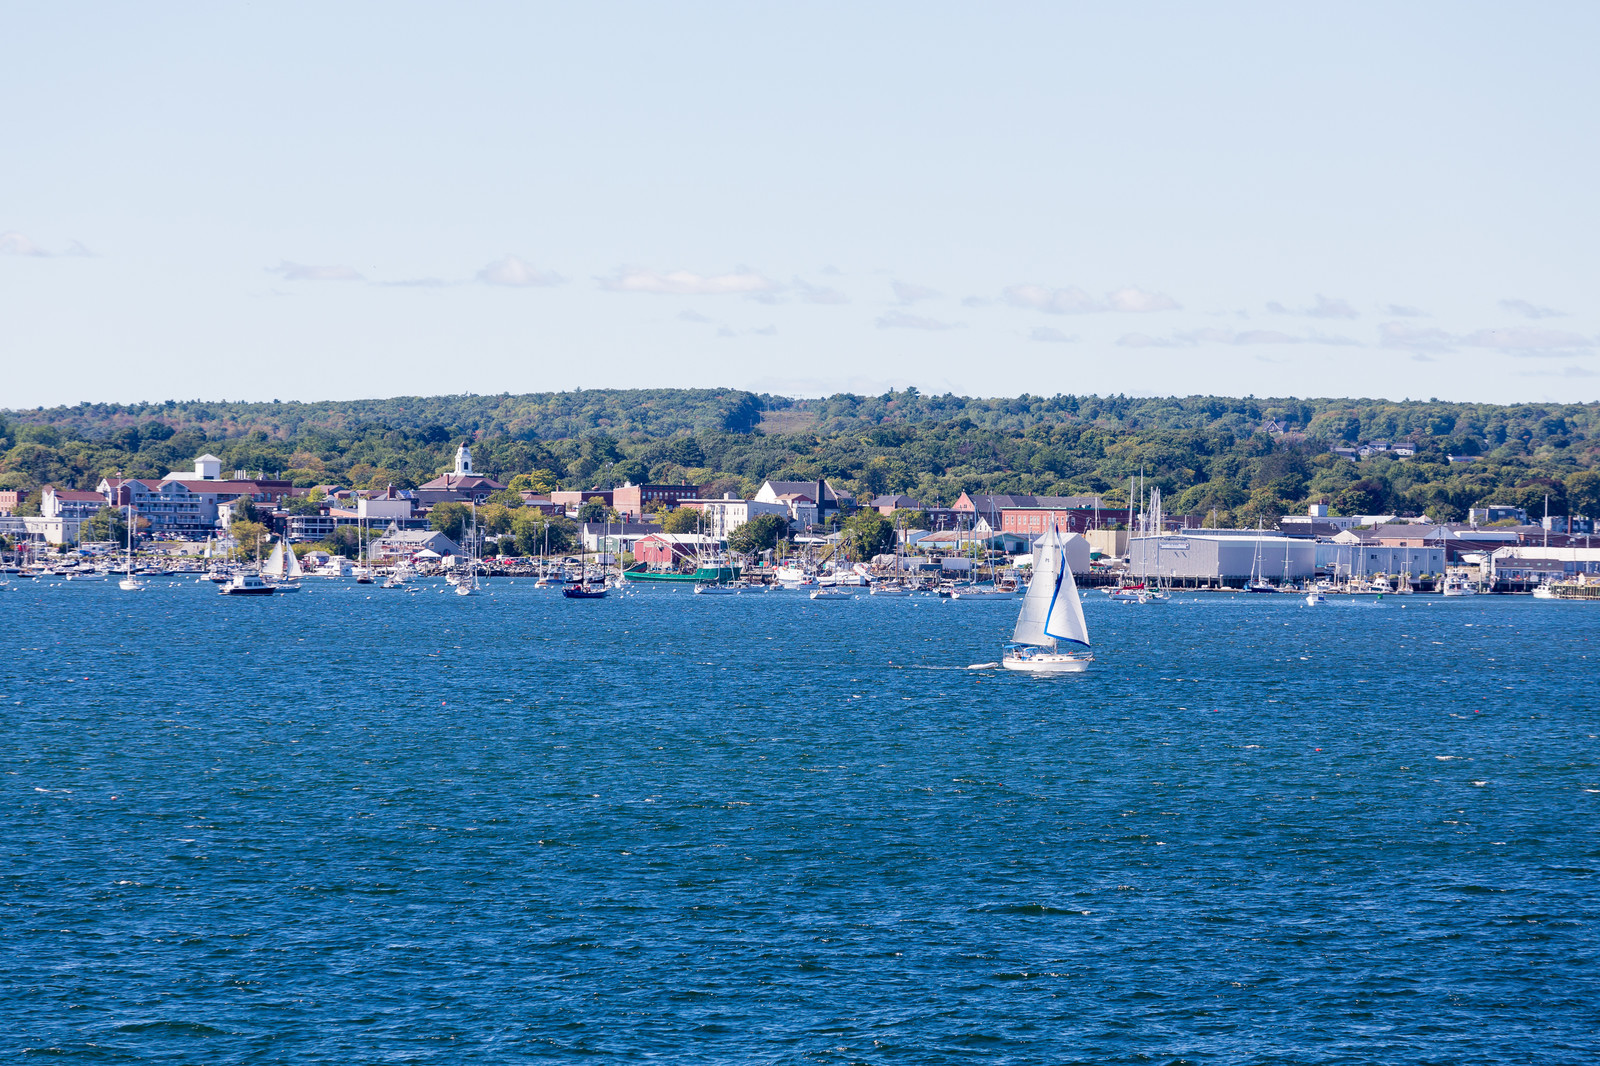 Photo taken from the water looking in at the shoreline of Rockland Maine with sailboats in the bay